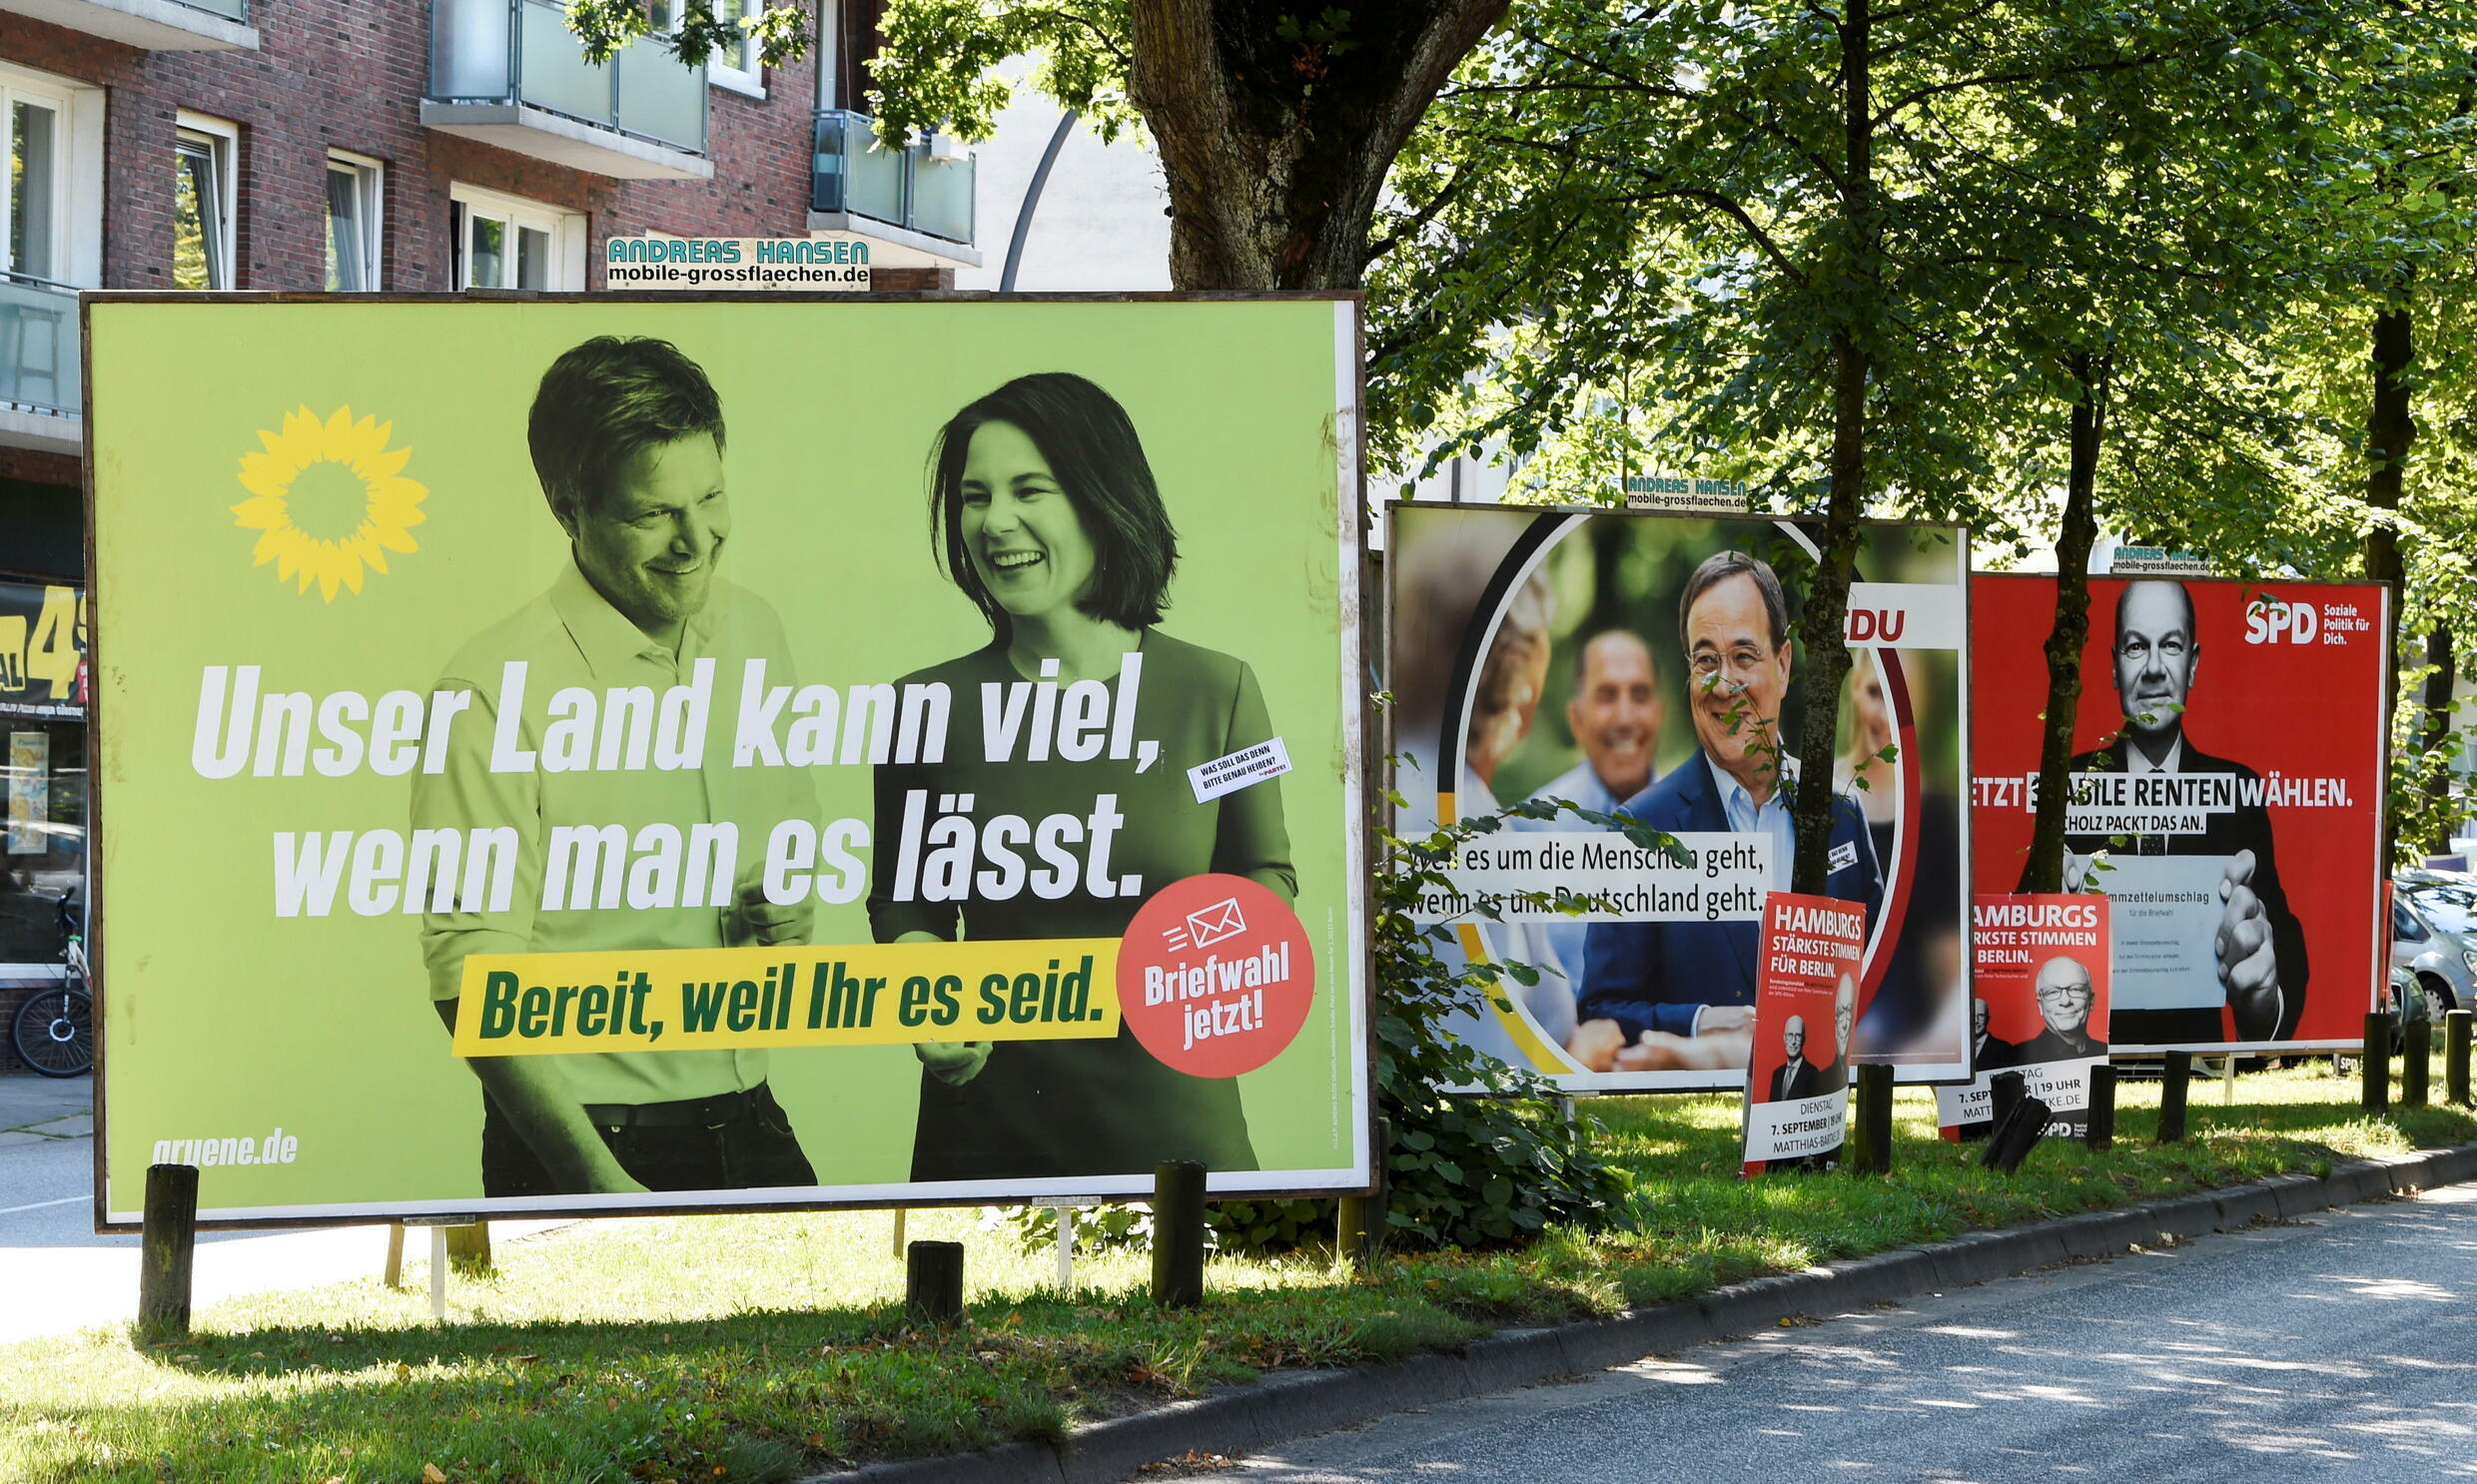 2021-09-02T140028Z_2011094036_RC2QHP9FUAAR_RTRMADP_3_GERMANY-ELECTION-SNAPSHOT